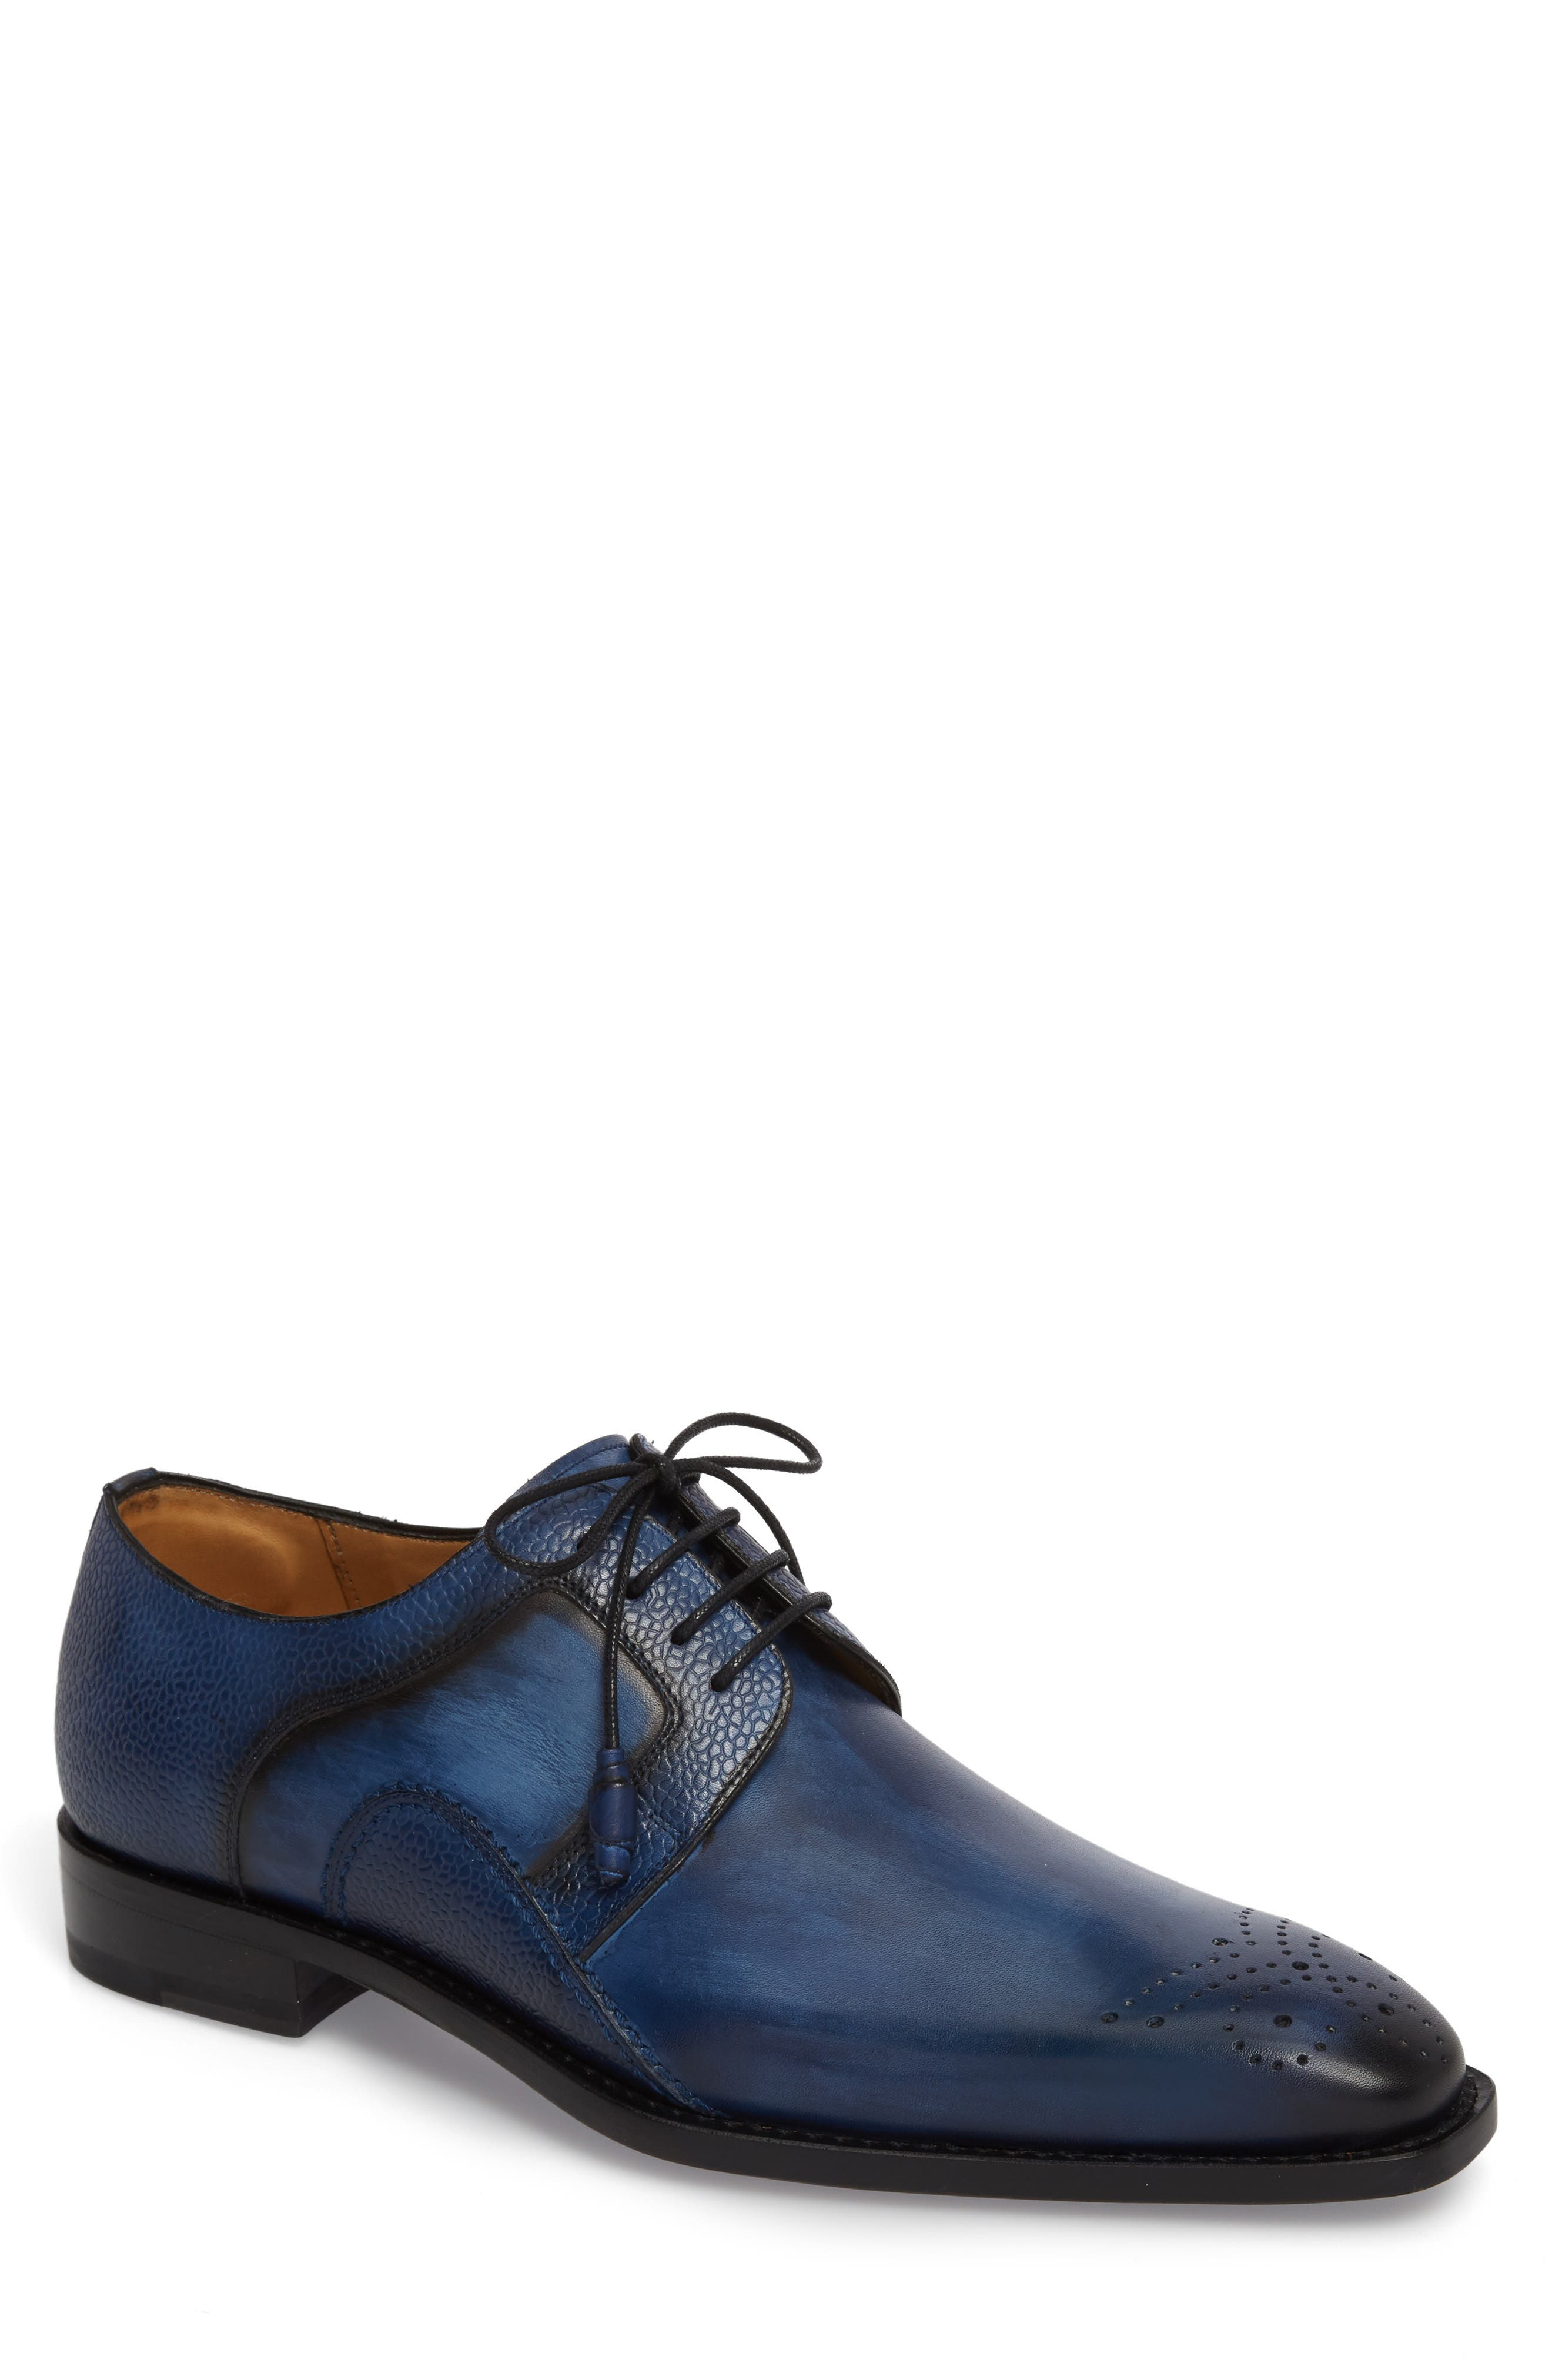 Saturno Medallion Toe Derby,                         Main,                         color, Mid Blue Leather